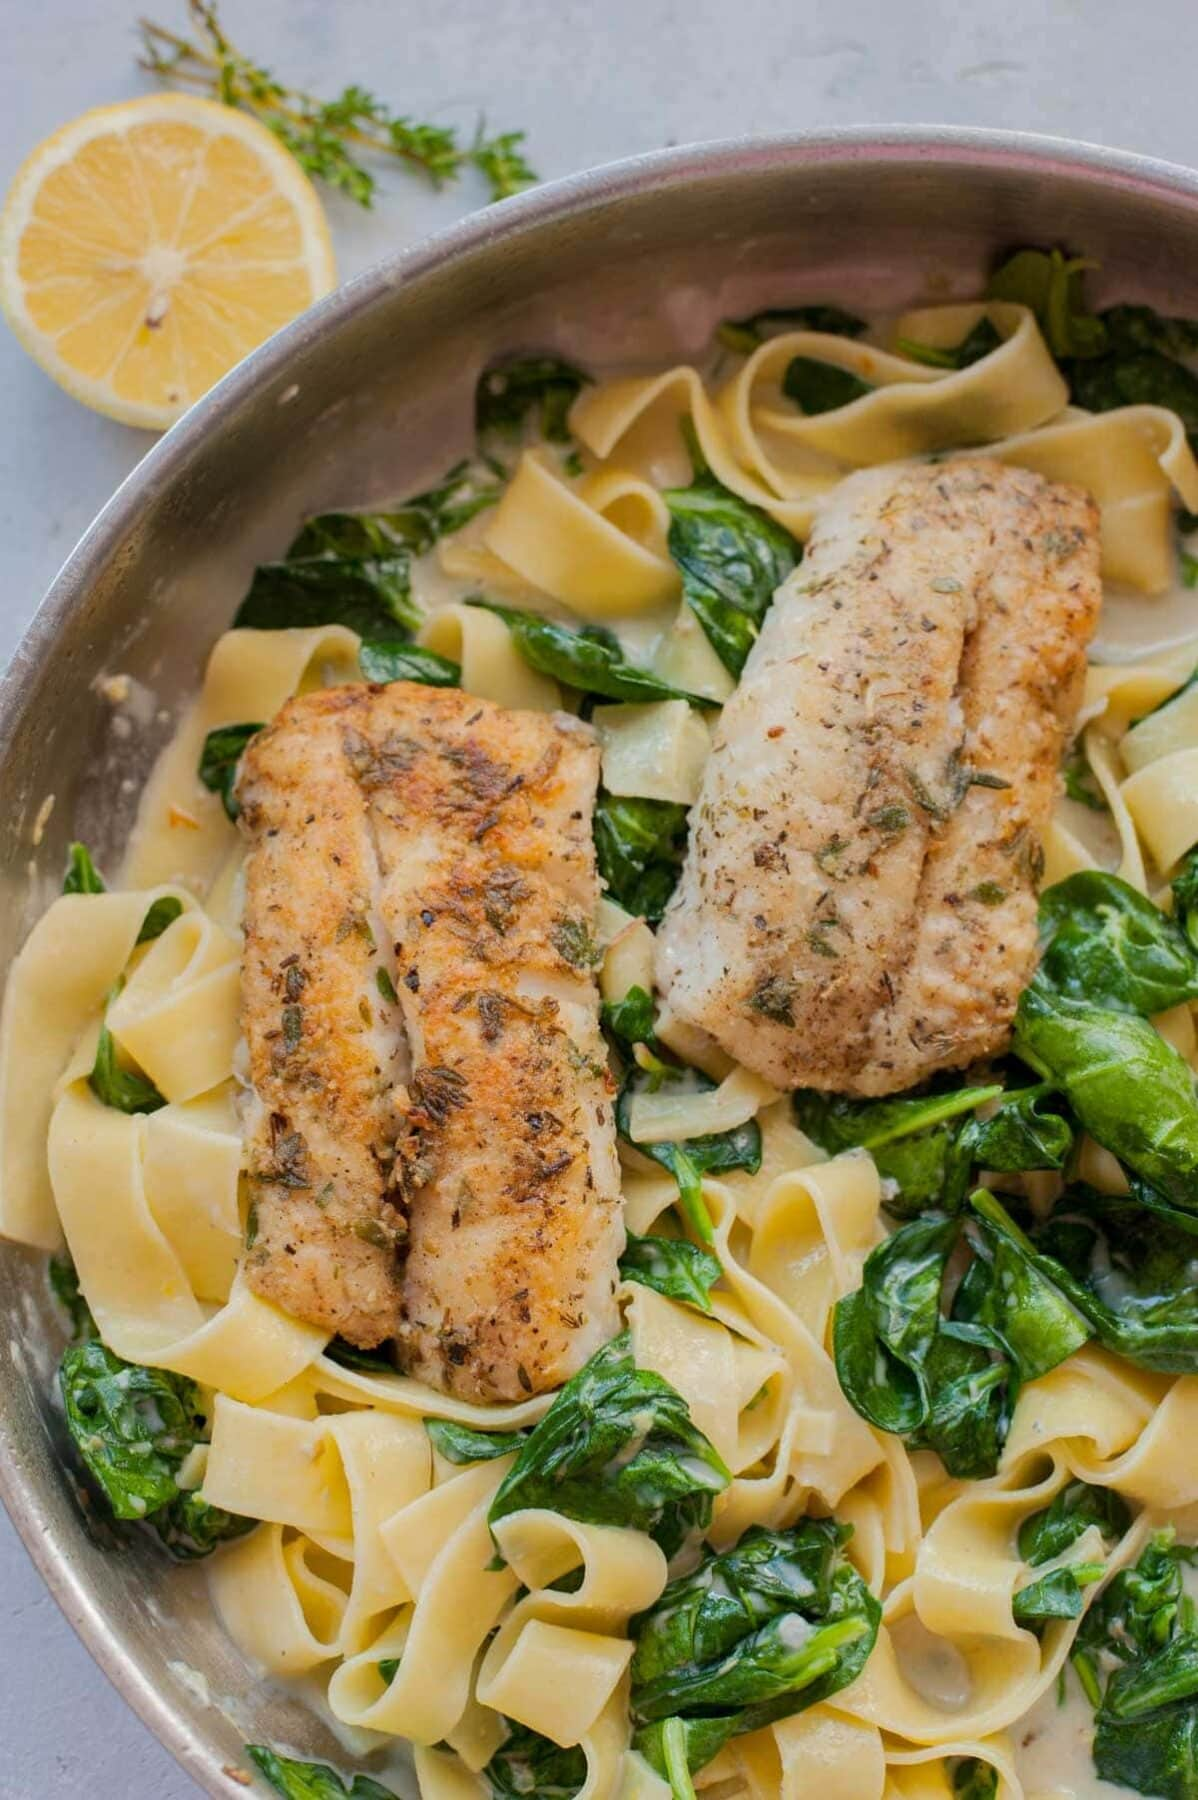 Gorgonzola spinach pasta and pa-fried fish in a frying pan.